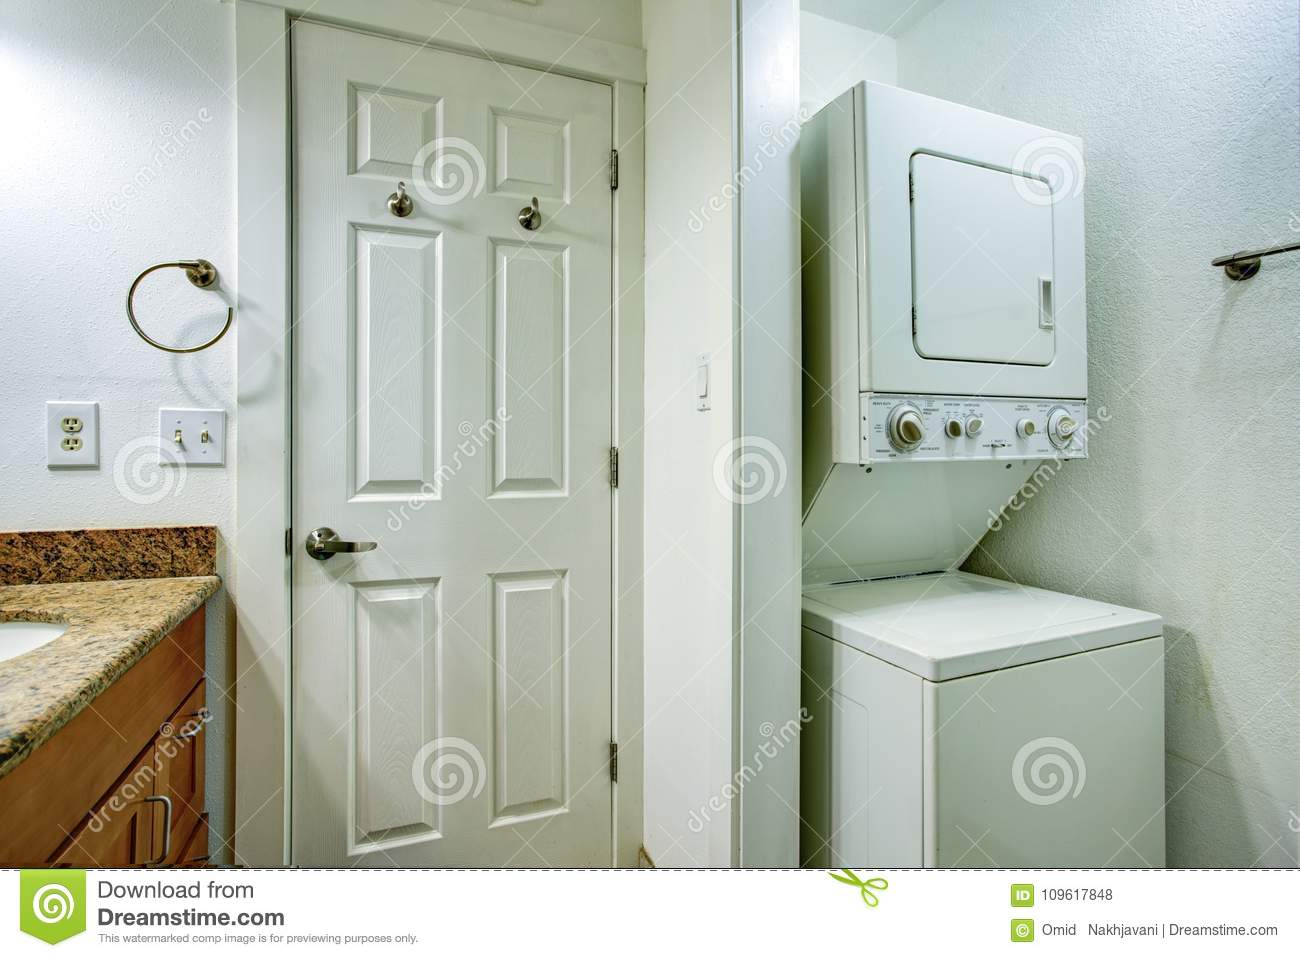 Fun Bathroom With Bathroom Vanity And Stacked Washer And